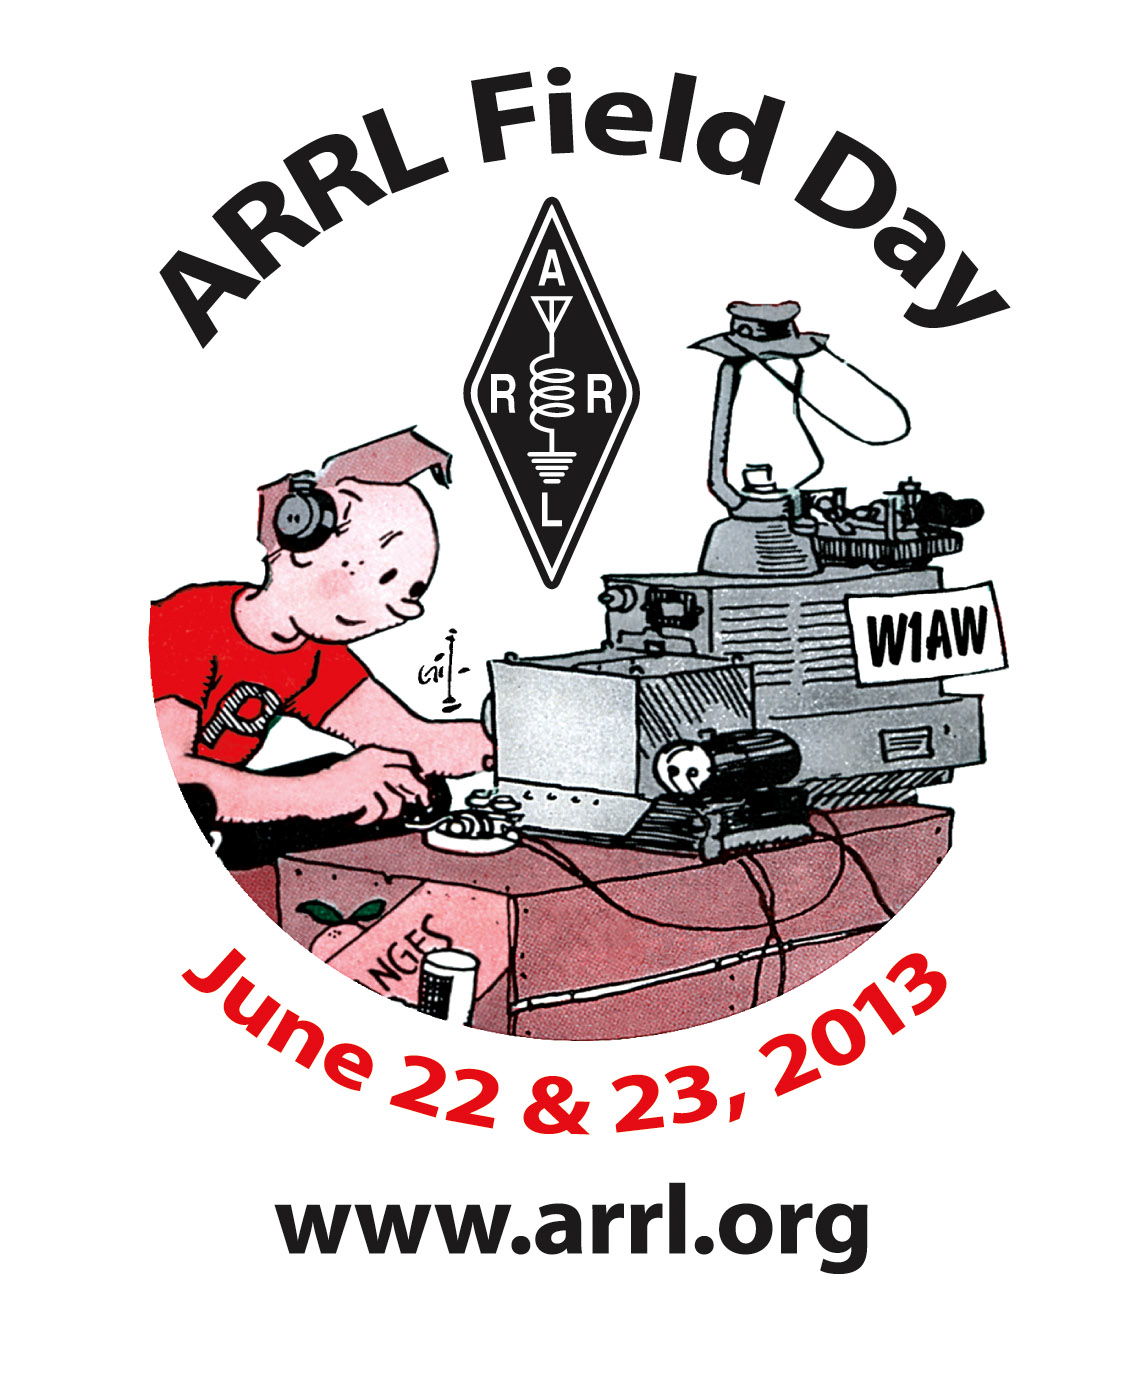 http://www.arrl.org/files/file/Field-Day/2013/2013FieldDayLogoWeb.jpg